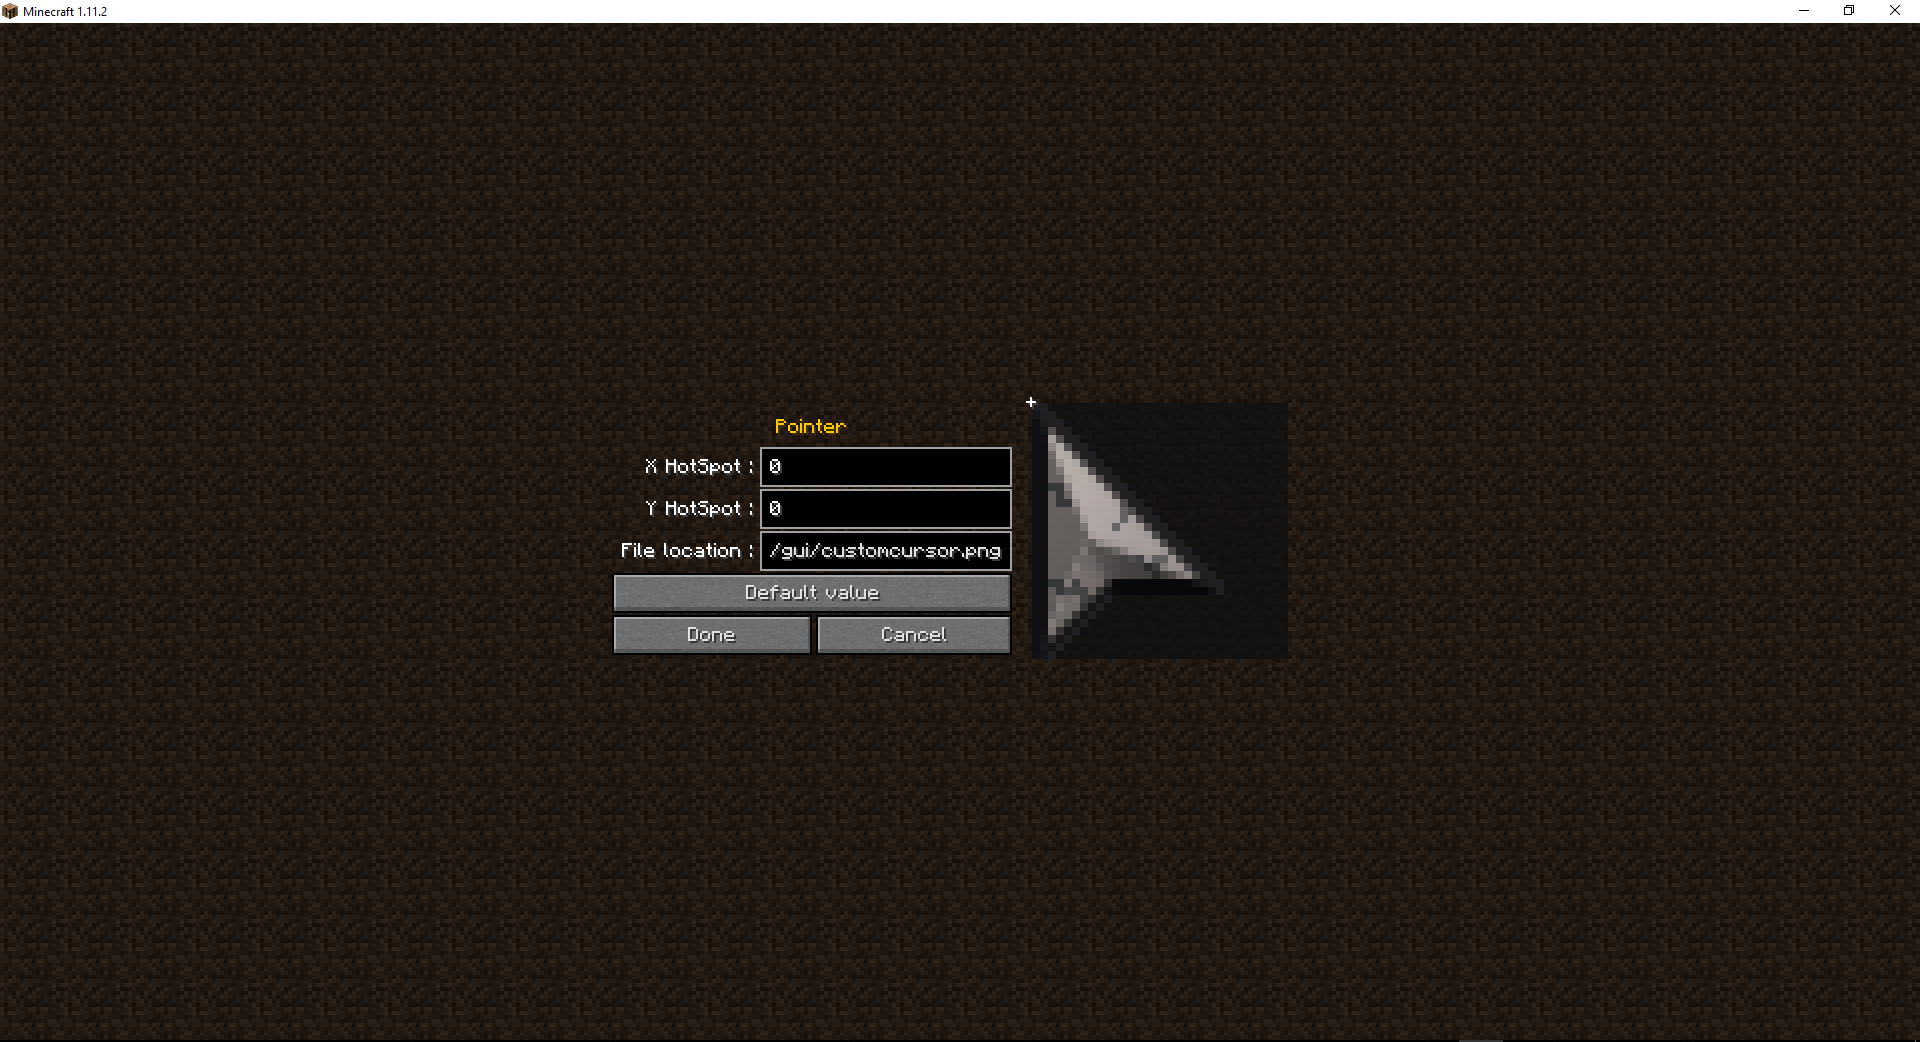 CursorMod 1.2 cursor editor -- A menu to edit hotspot and file location of the cursor